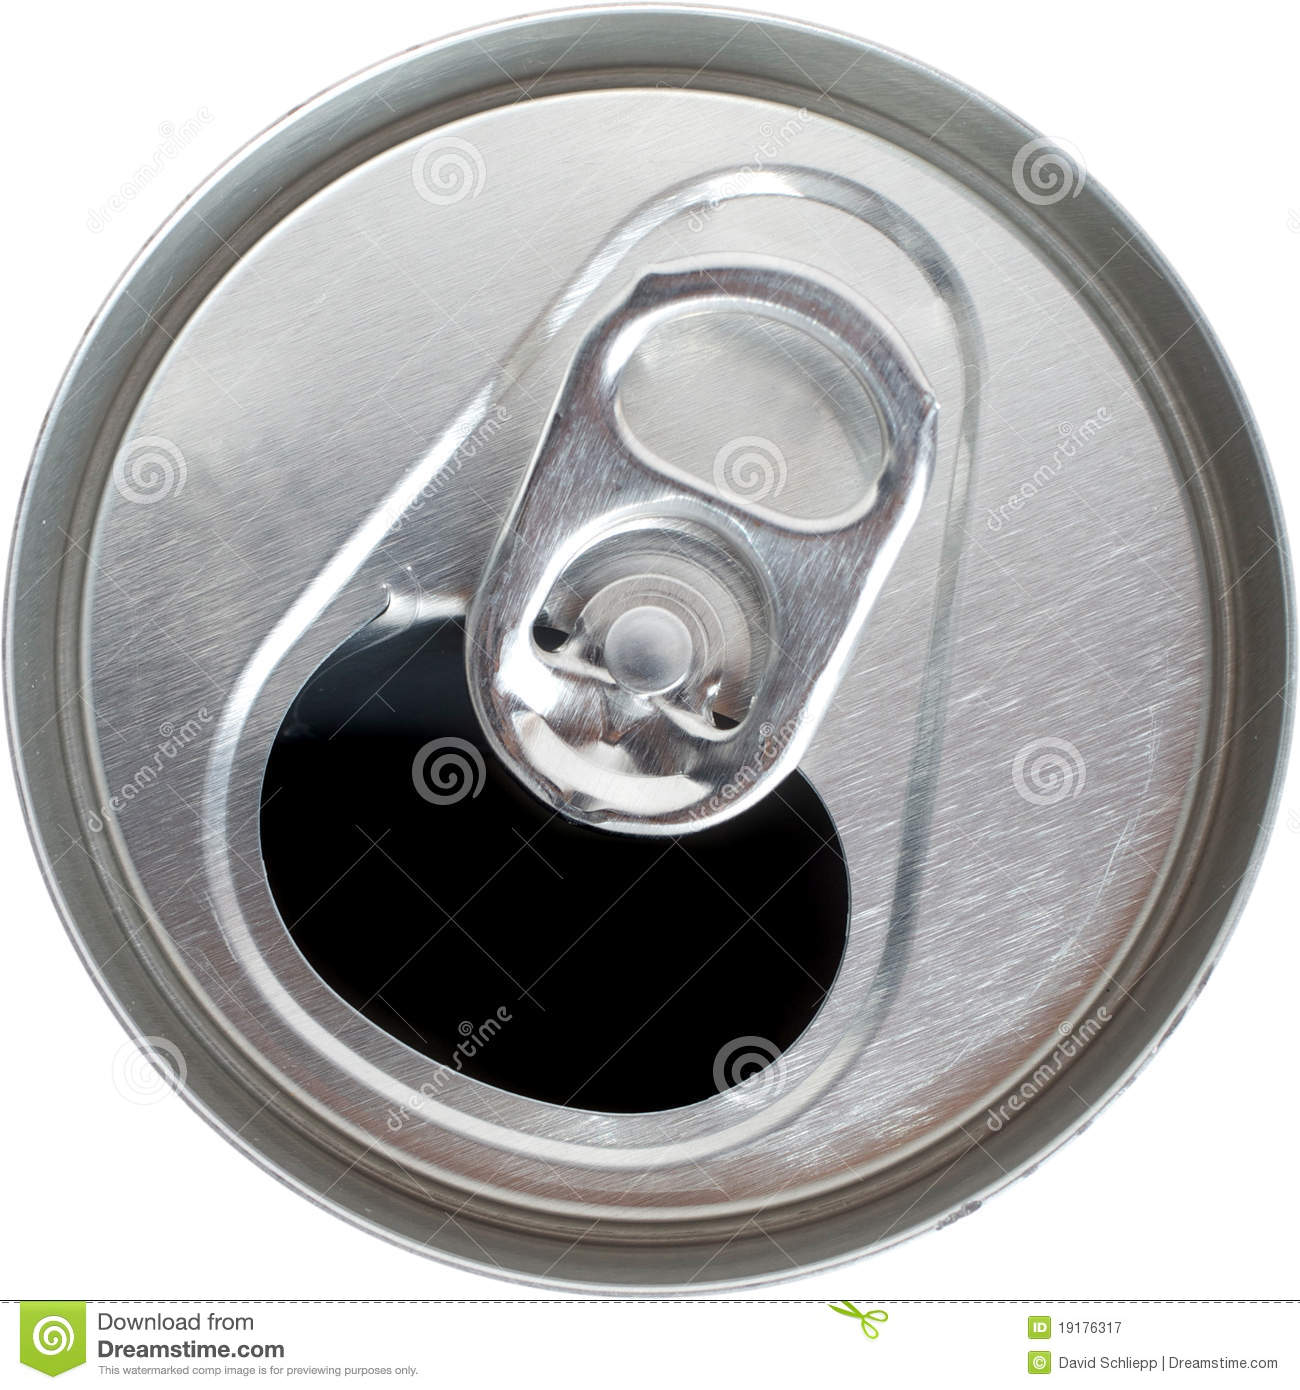 Top View Of An Open Silver Soda Pop Can Stock Image